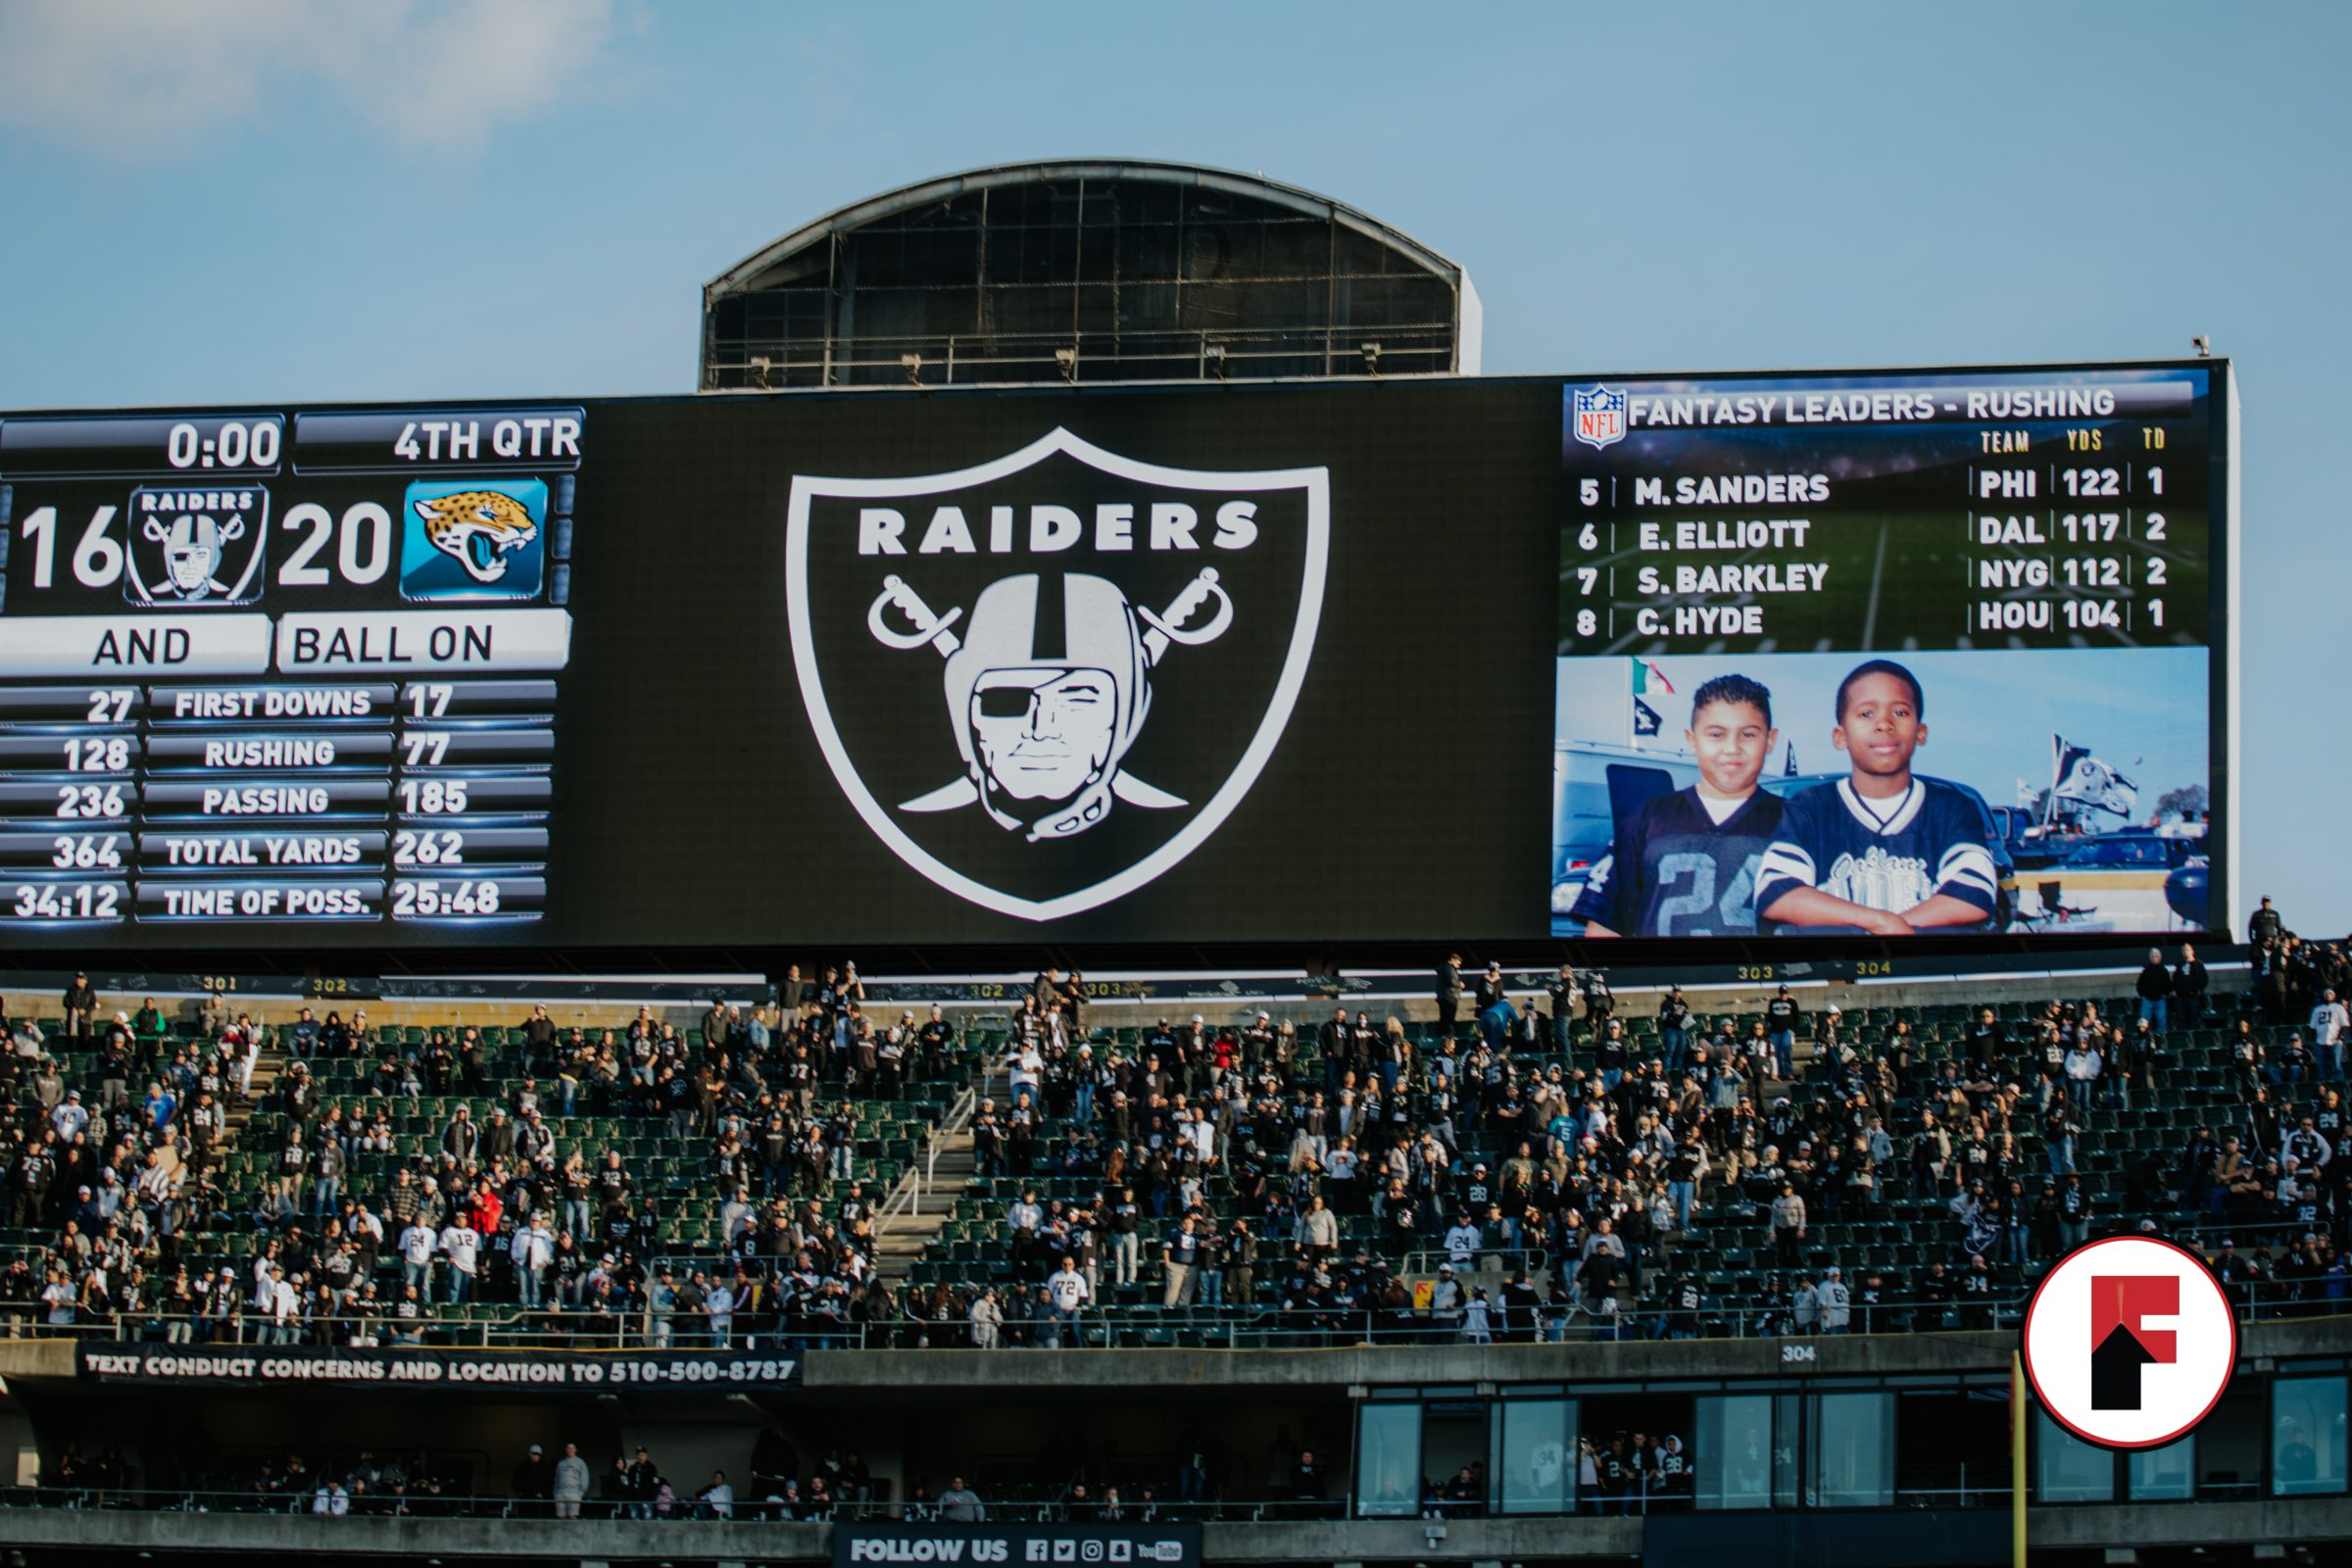 Raiders Last Game in Oakland-71